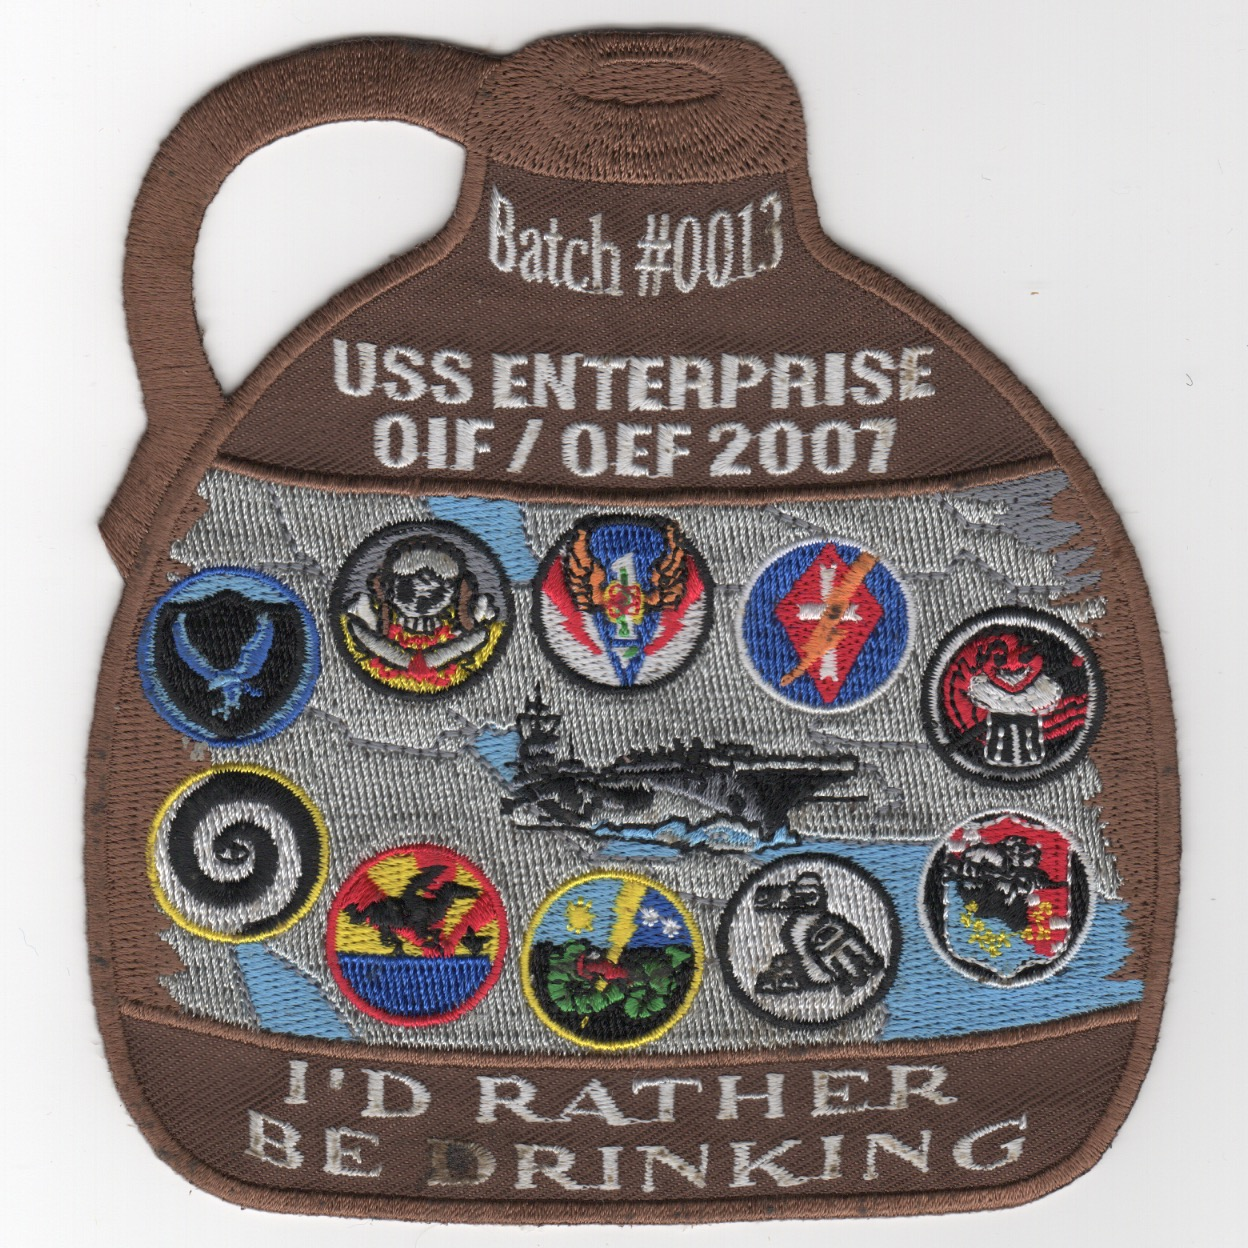 441) CVN-65 2007 'BROWN JUG' Cruise Patch